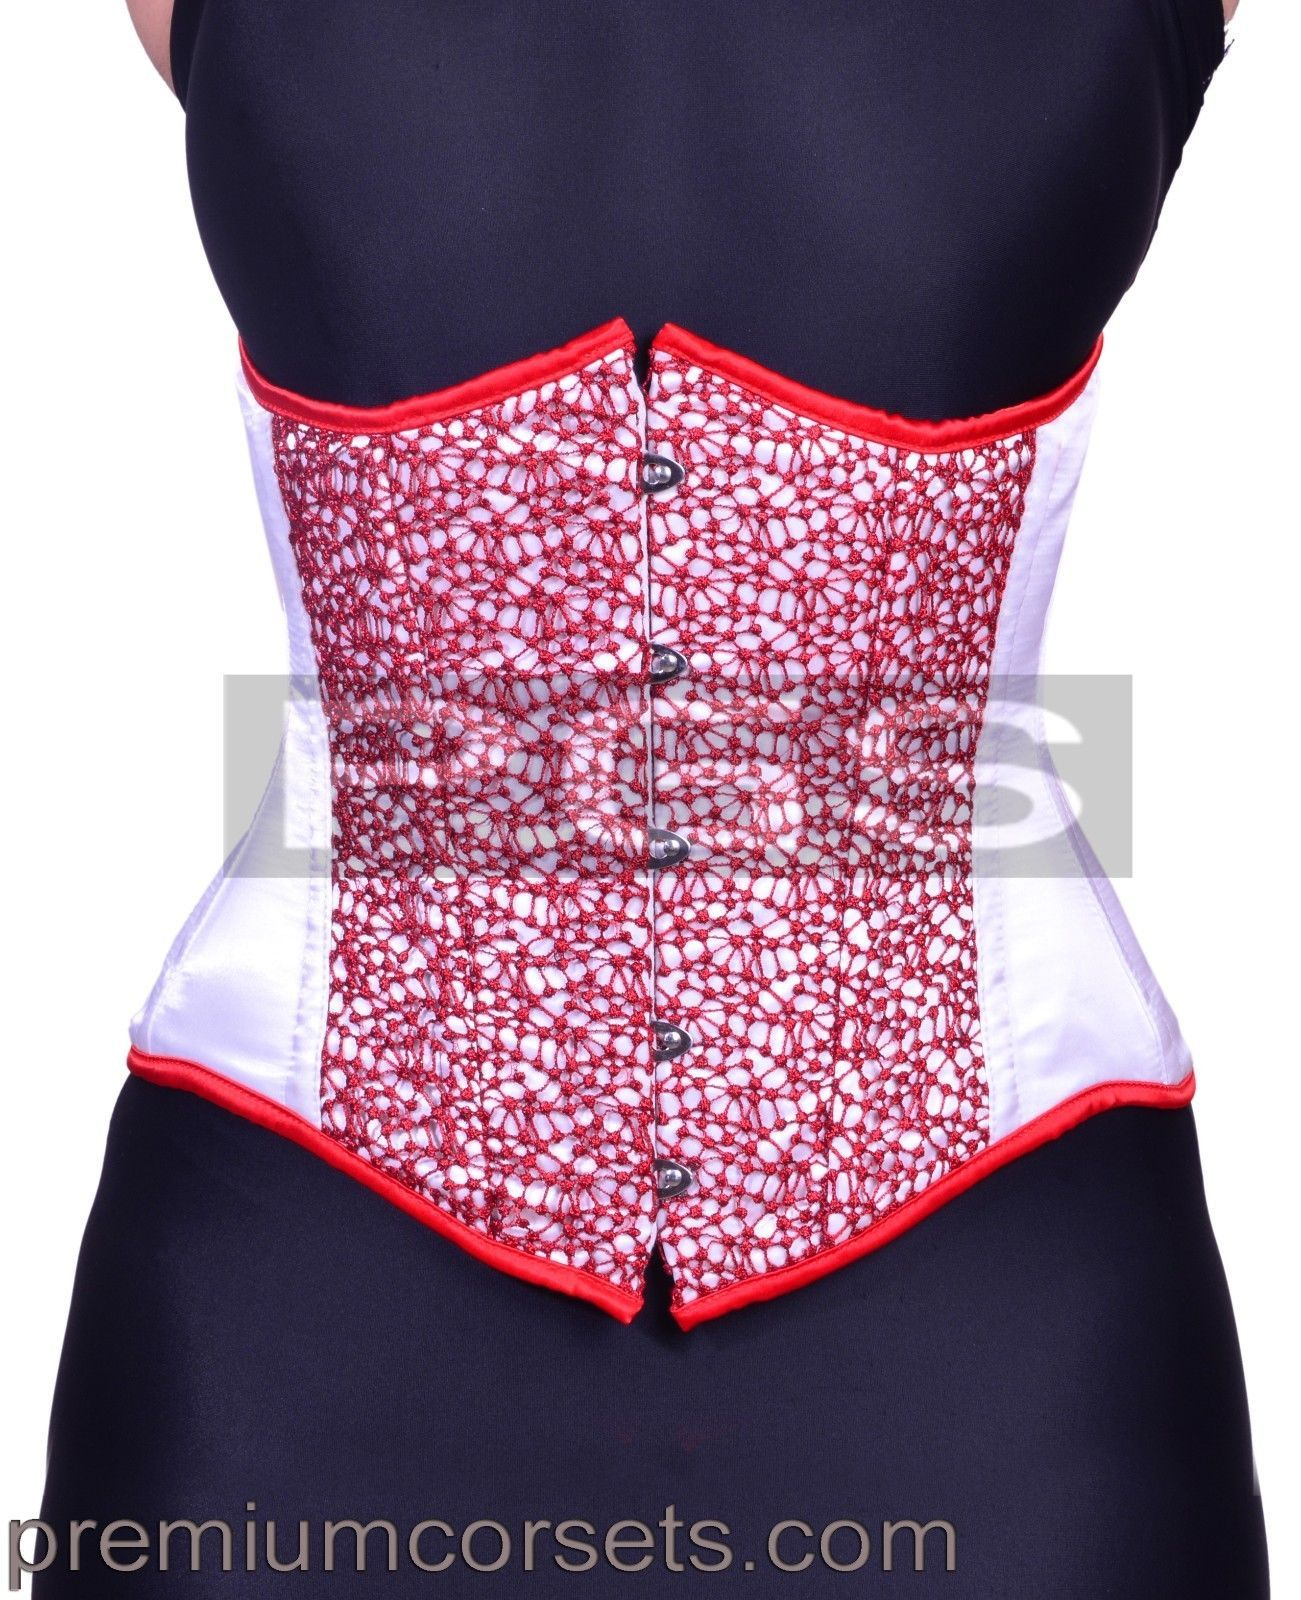 Details about White Satin Red Mesh Underbust Steel Boned